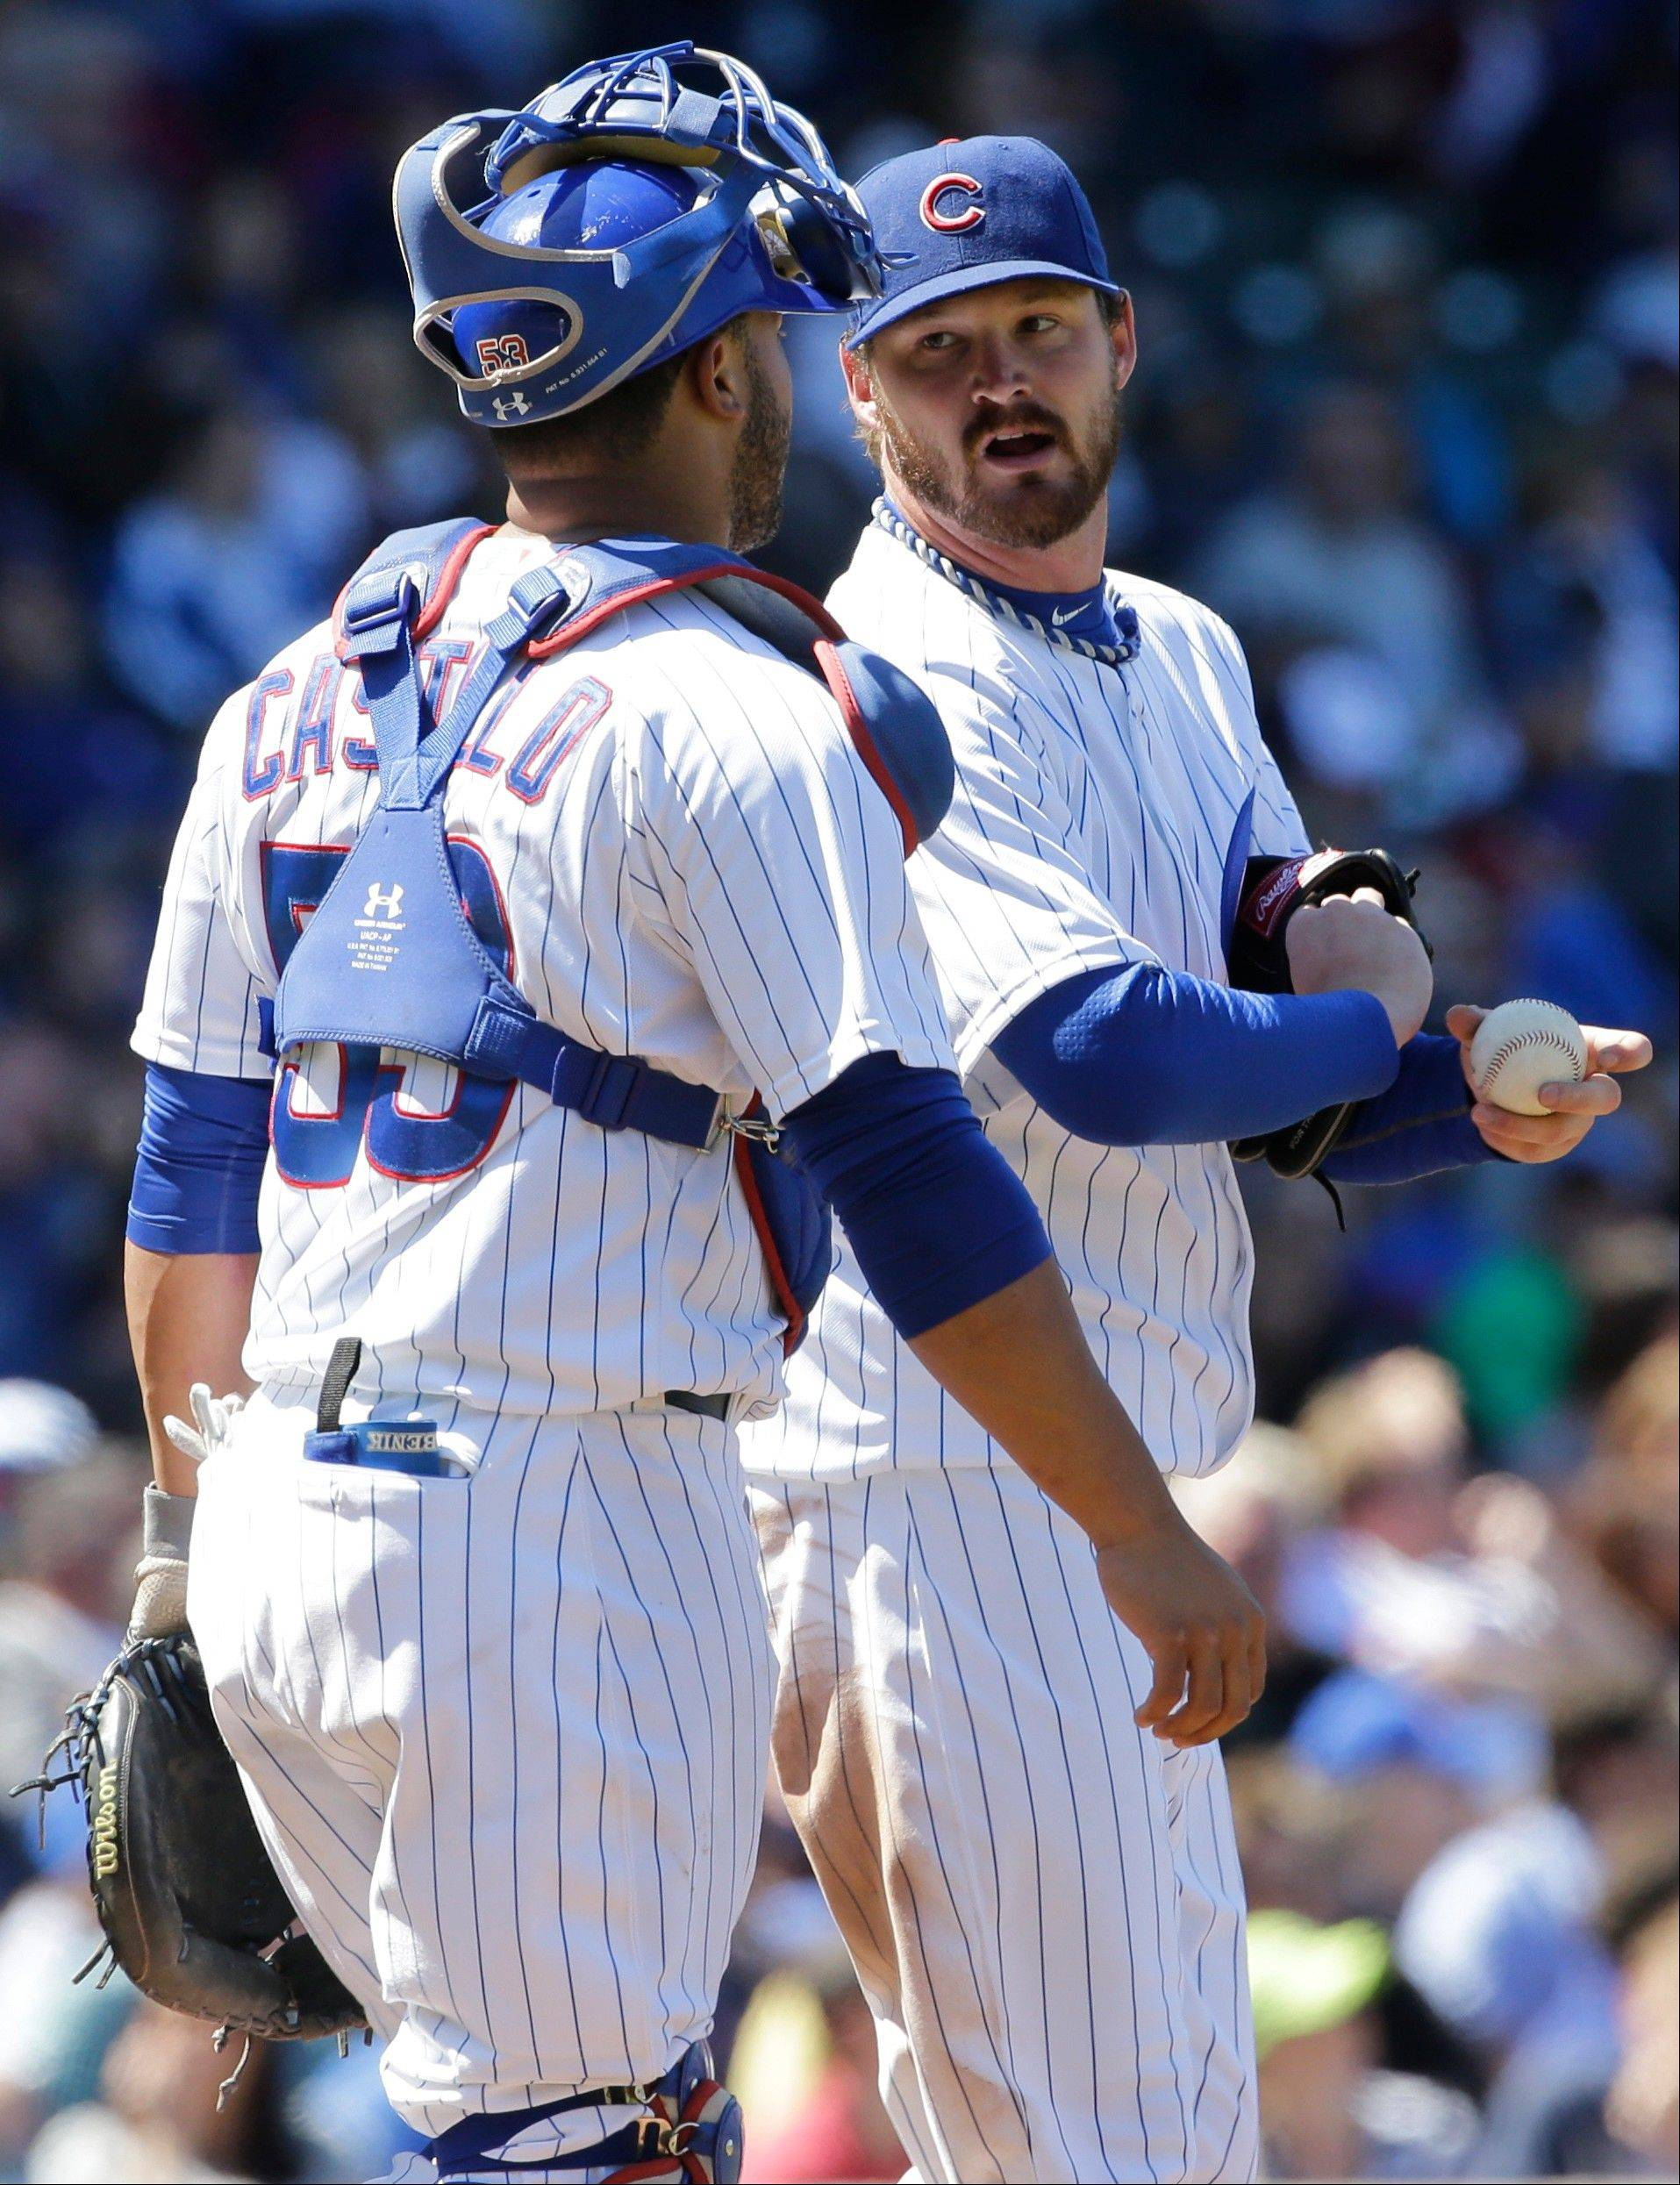 Cubs starter Travis Wood talks to catcher Welington Castillo after the Pirates' Russell Martin hit an RBI-double in the sixth inning Friday at Wrigley Field.